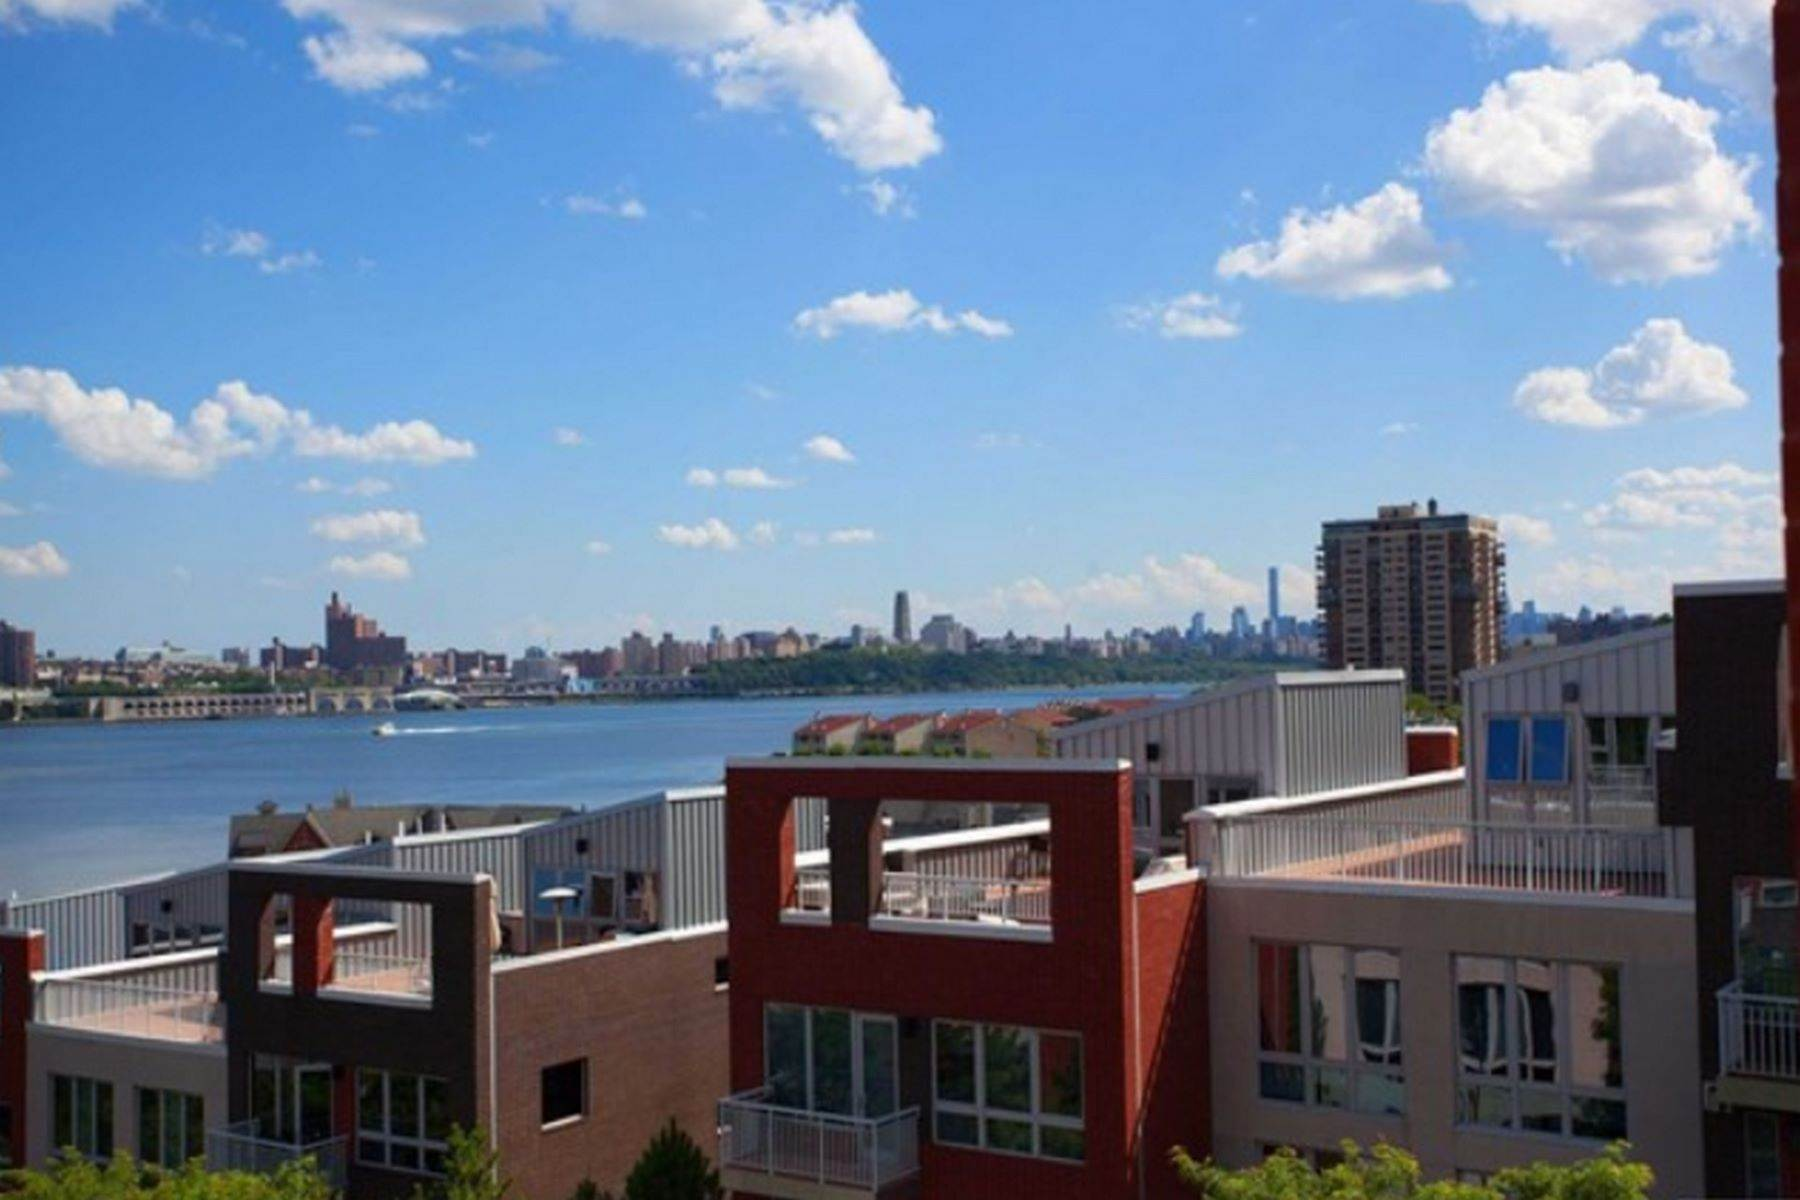 Condominiums at Edgewater, New Jersey 07020 United States